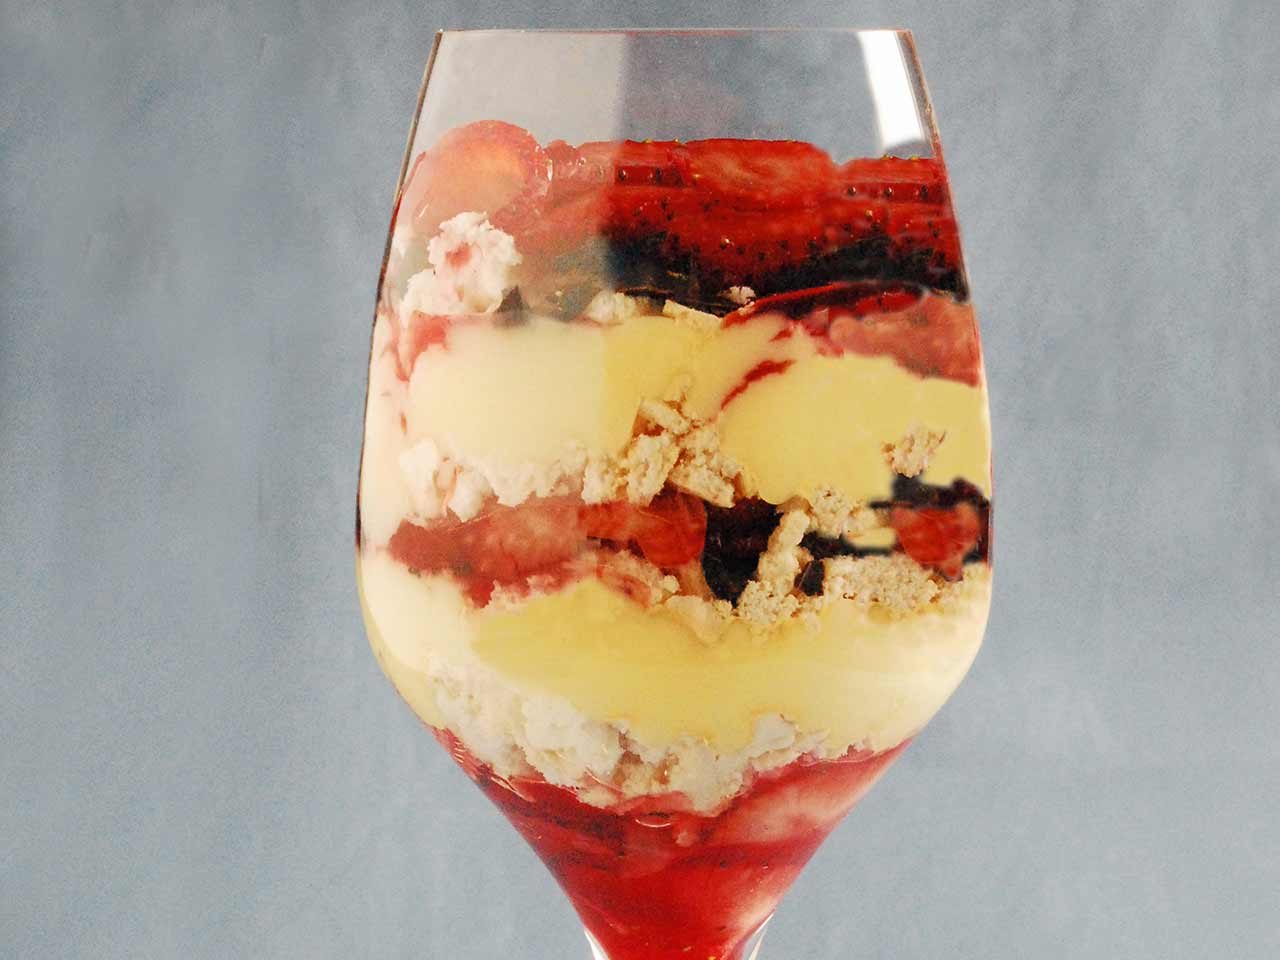 Strawberry and pavlova trifle